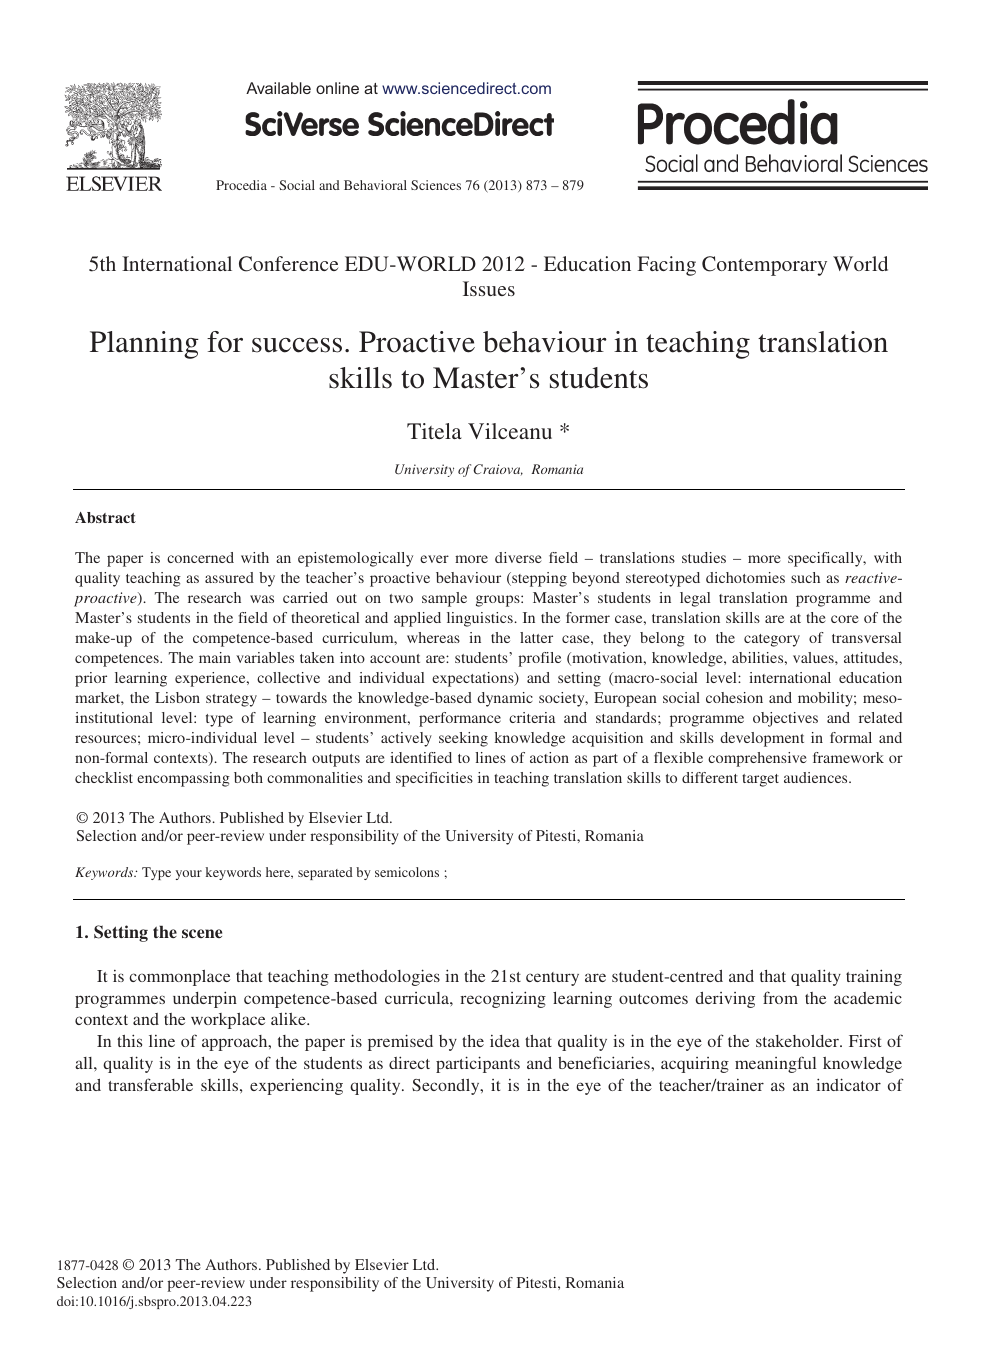 Planning for Success  Proactive Behaviour in Teaching Translation